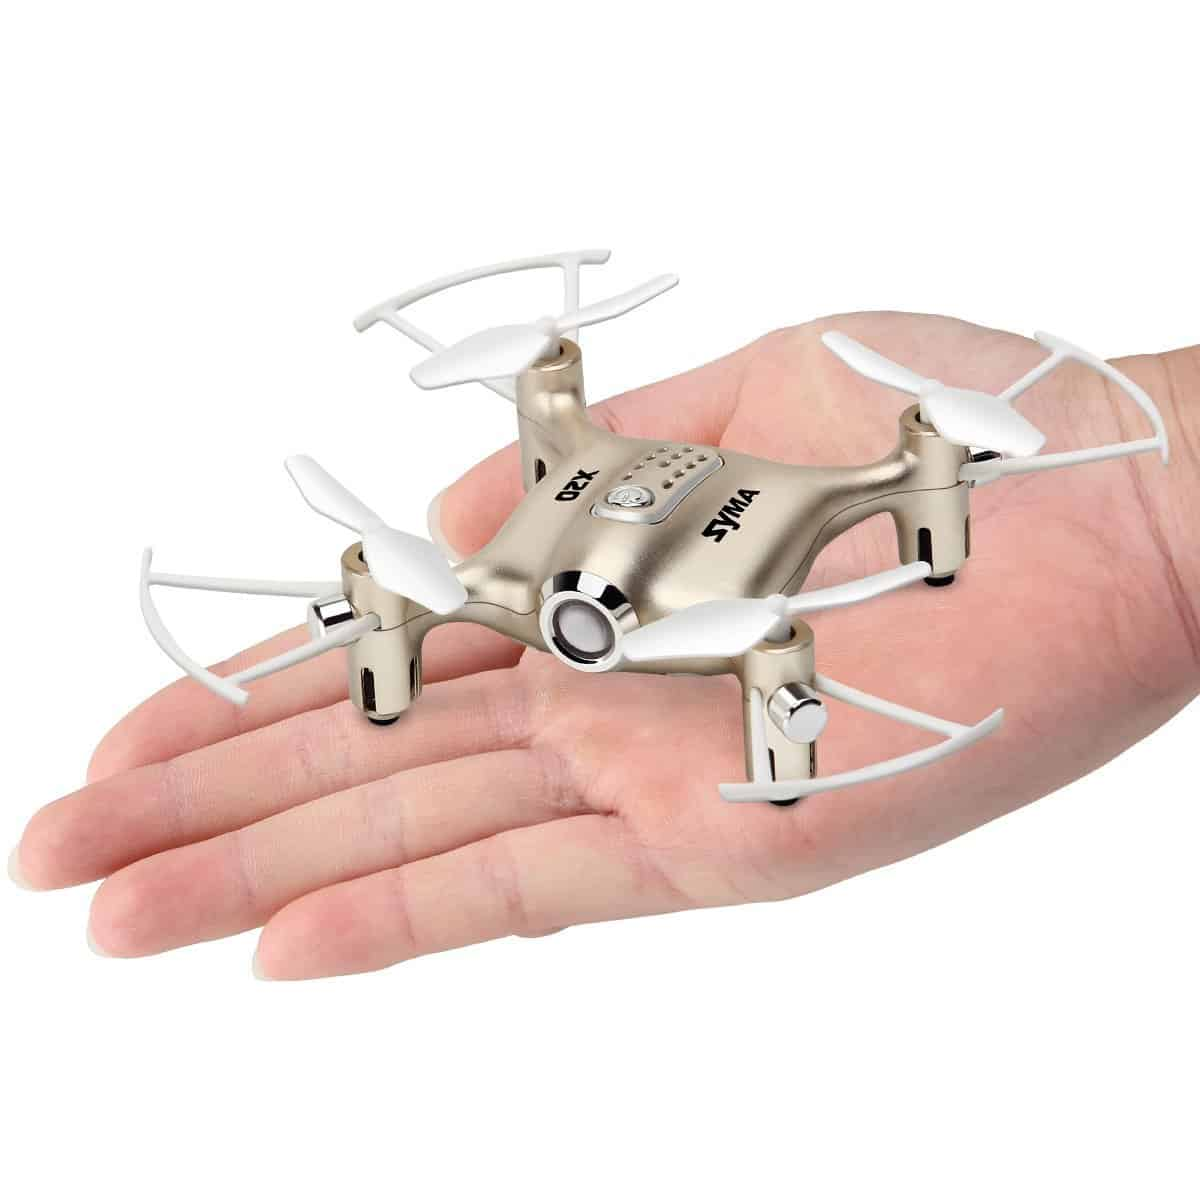 1419cfc995f24 Top 5 Drones For Young Children 5 to 10